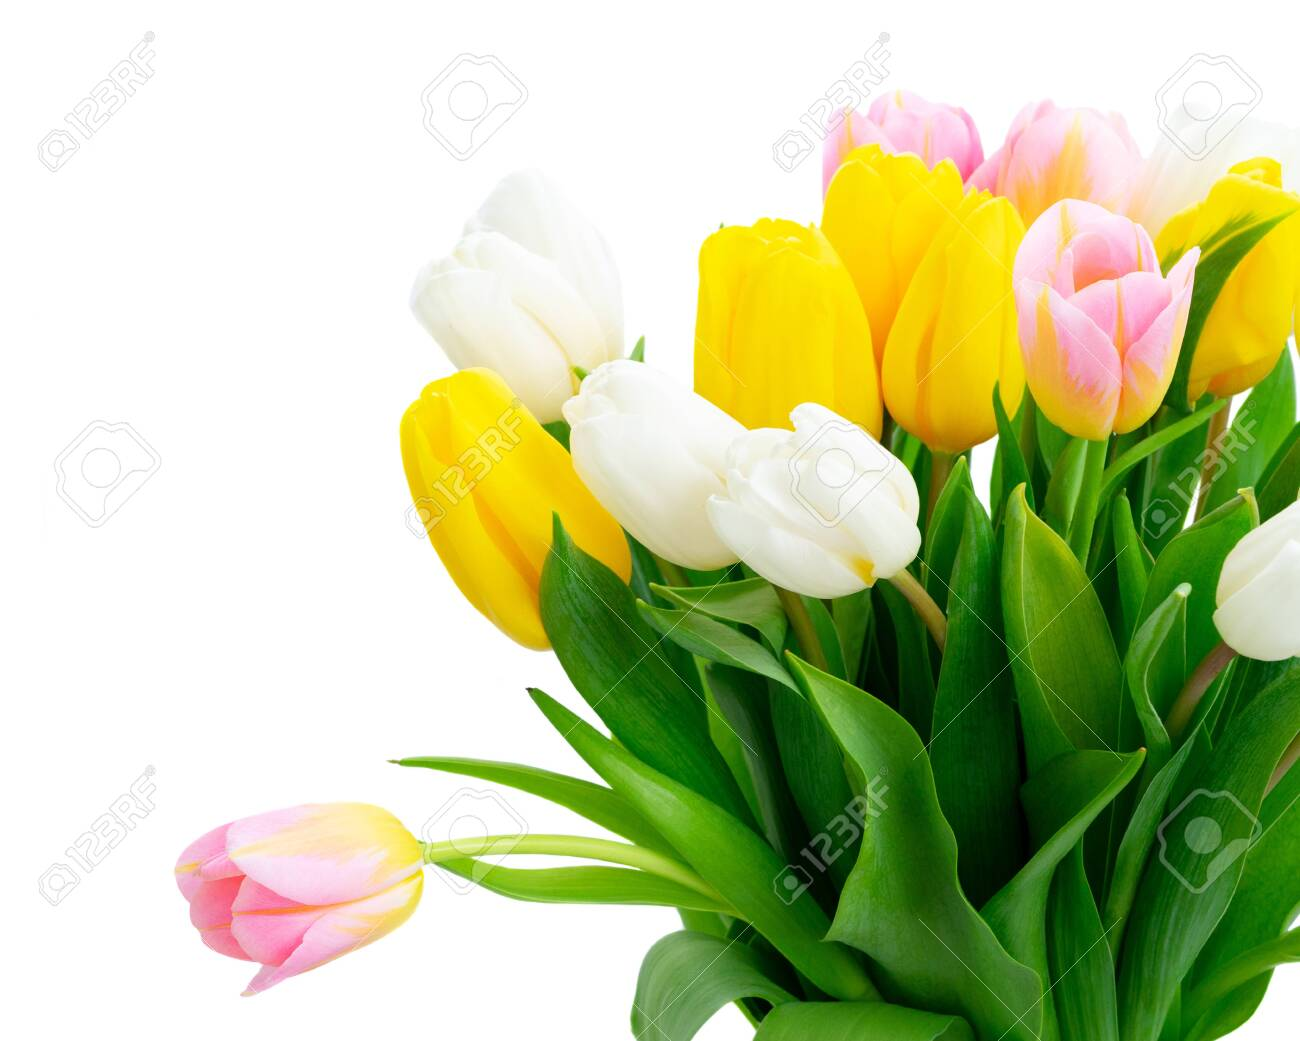 Pink, yellow and white fresh tulip flowers and green leaves close up isolated on white background - 121439166